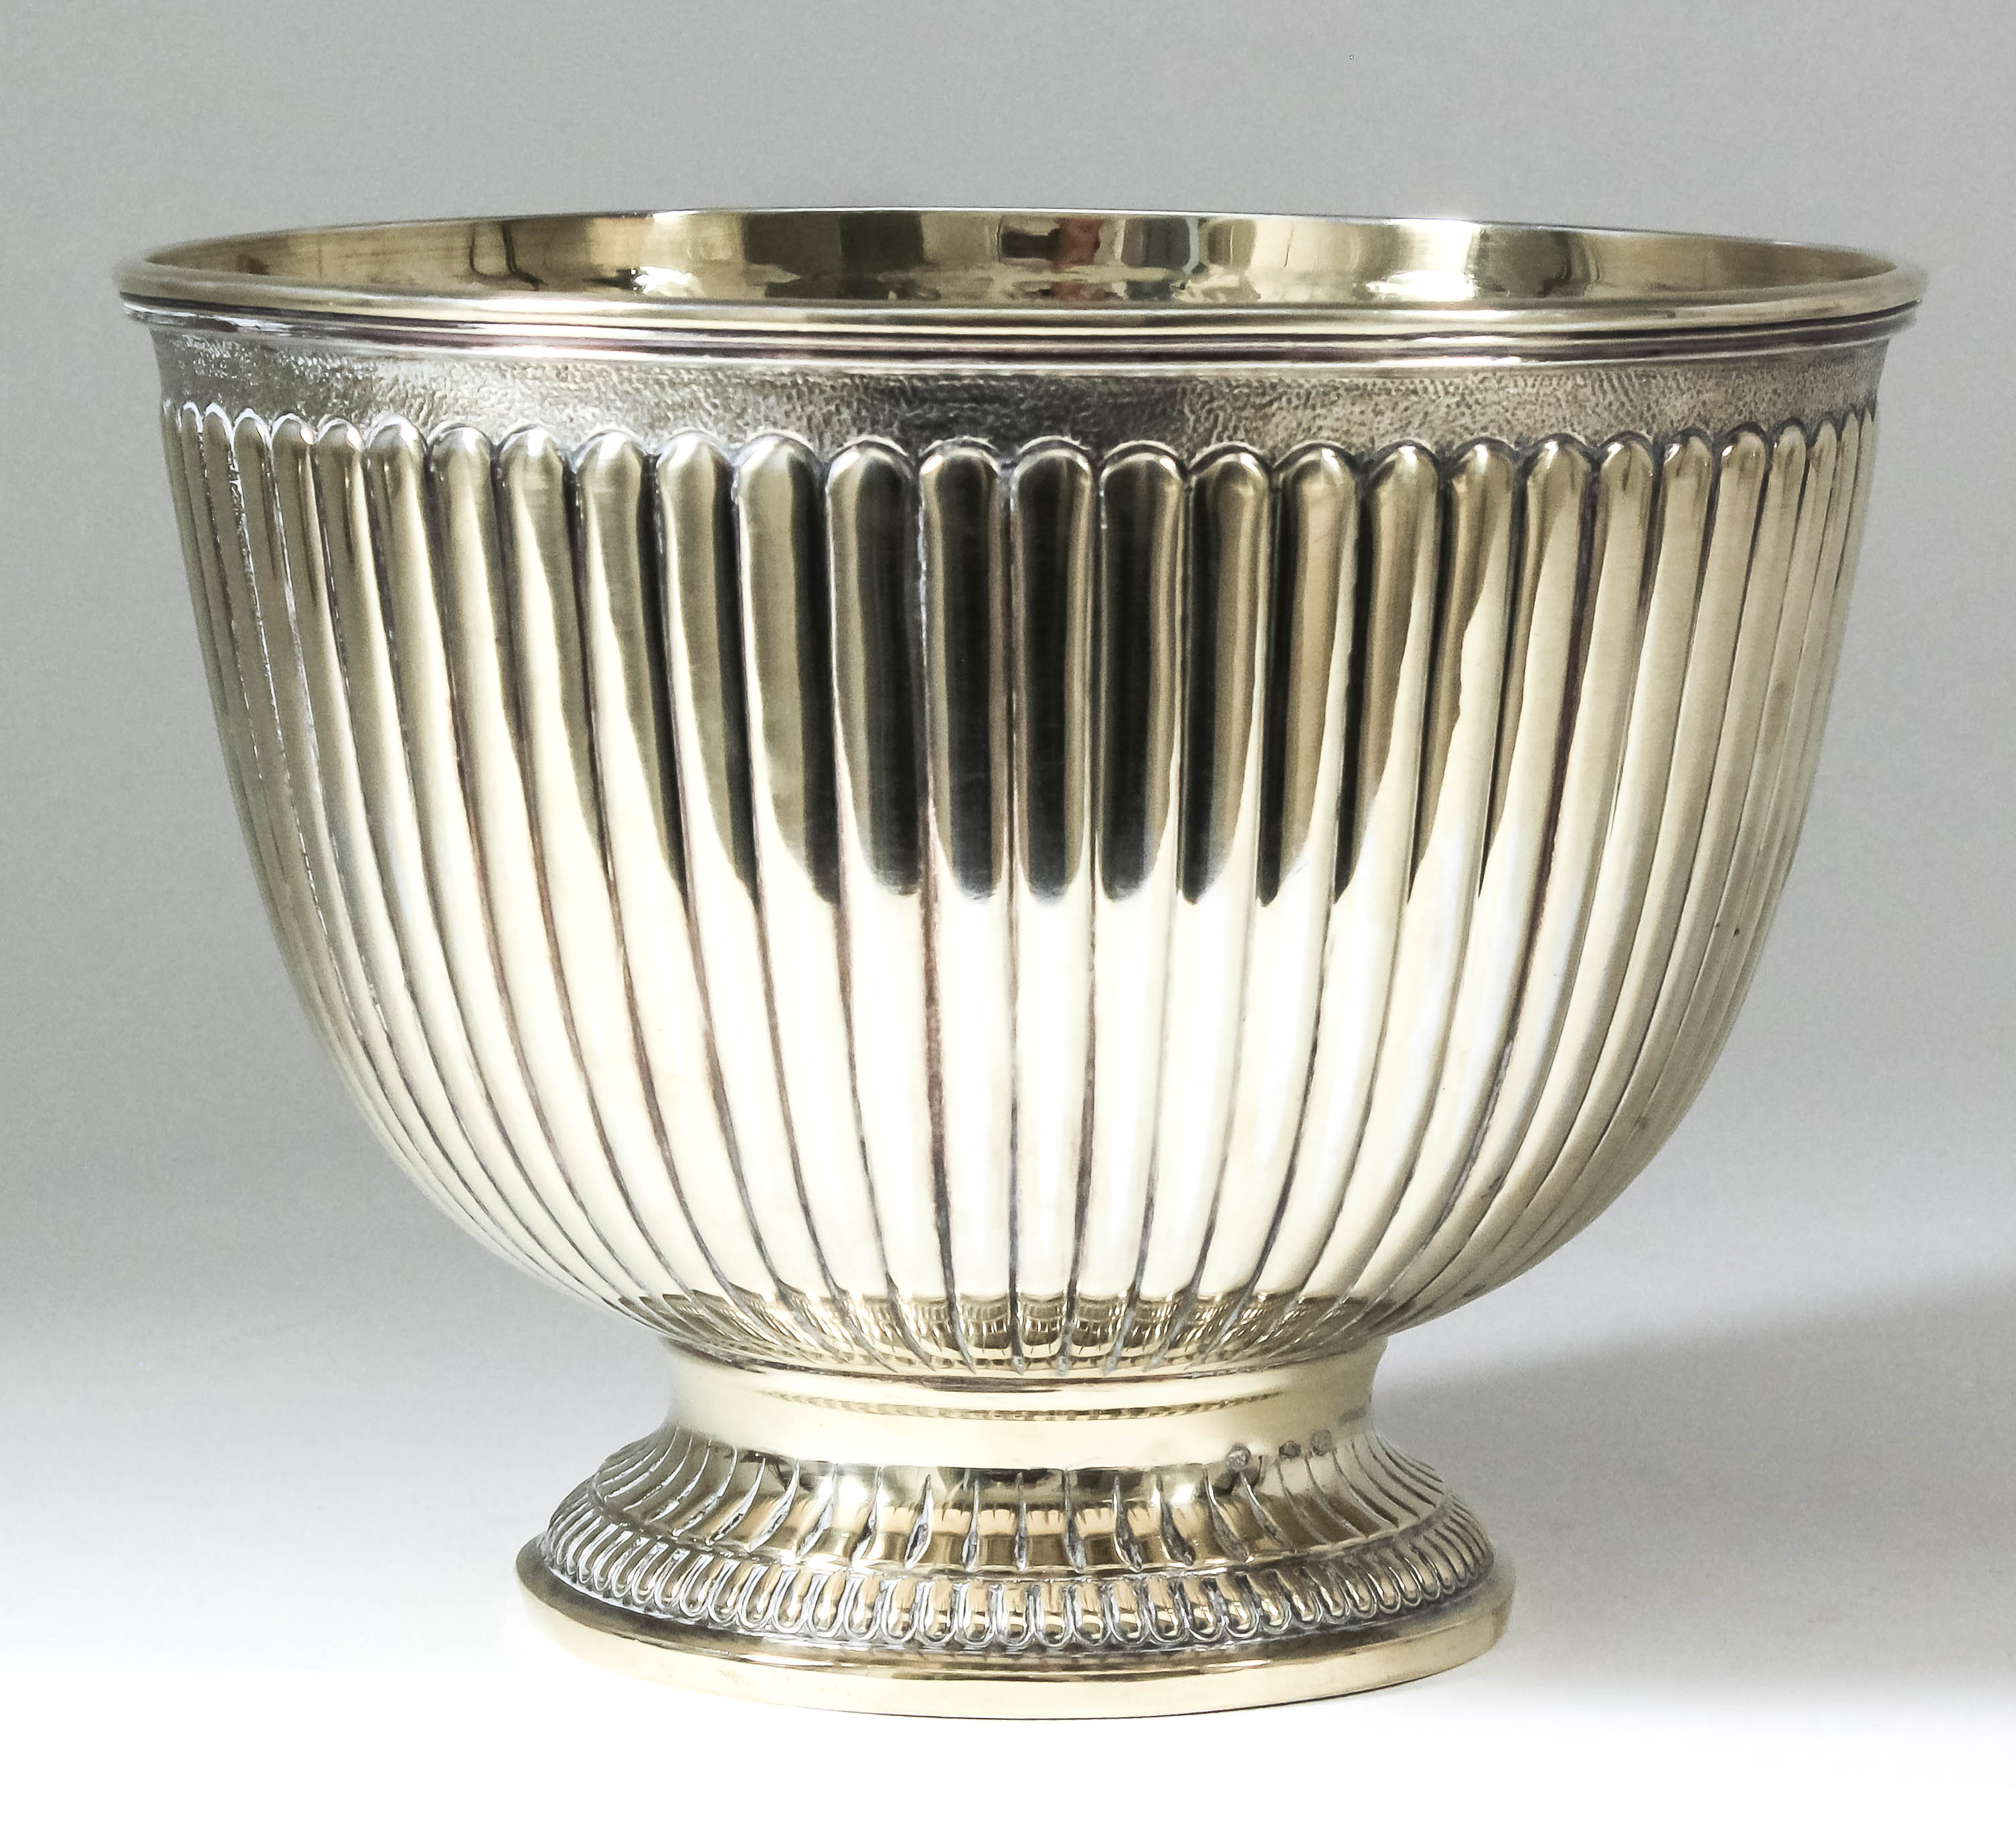 Lot 64 - A 20th Century Italian silver gilt circular rose bowl with moulded rim and reeded body, on moulded